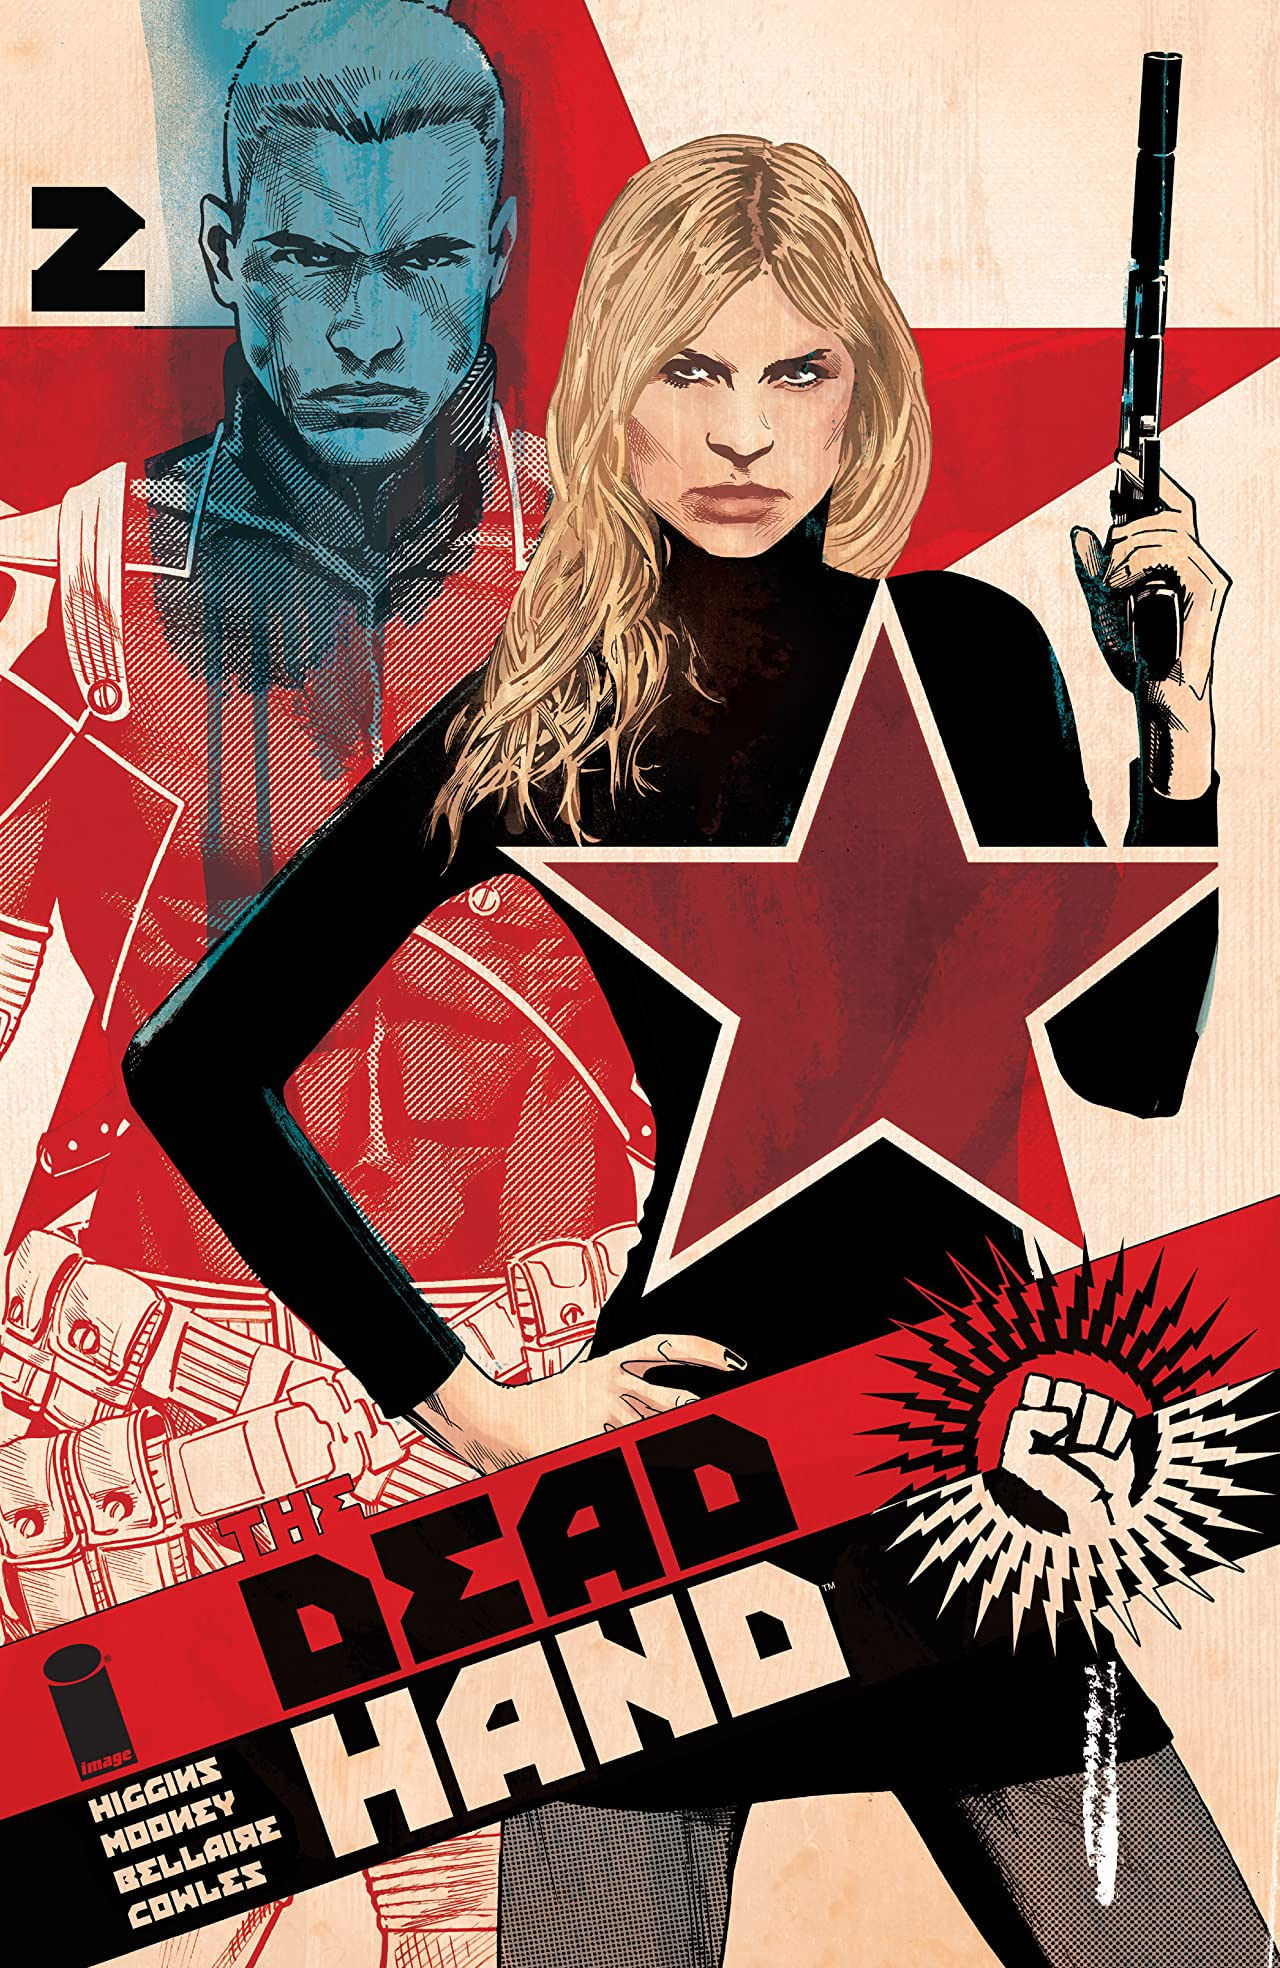 The Dead Hand #2